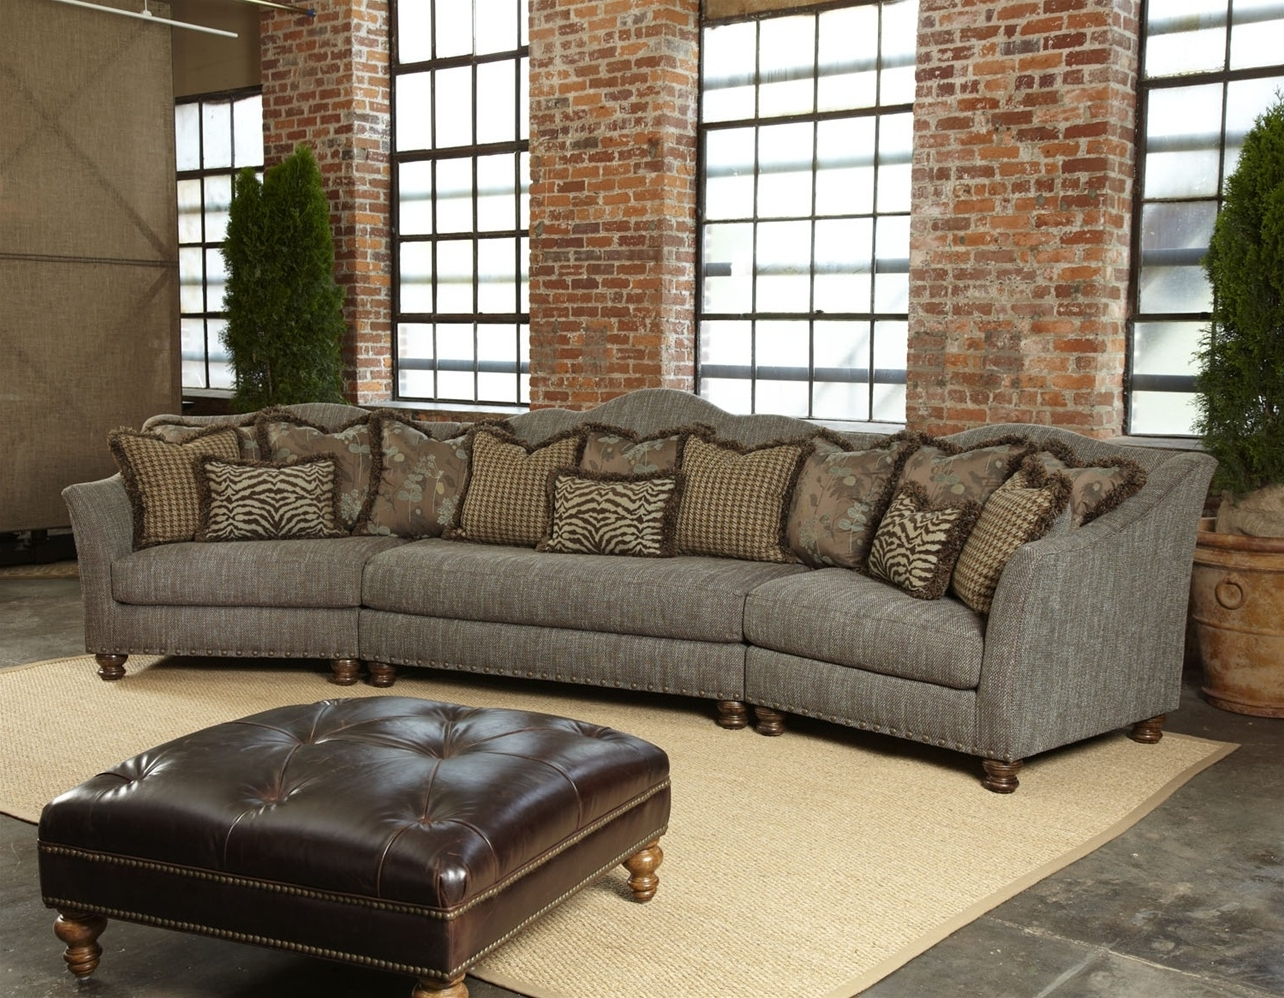 Trendy Good Quality Sectional Sofas – Cleanupflorida Pertaining To North Carolina Sectional Sofas (View 17 of 20)